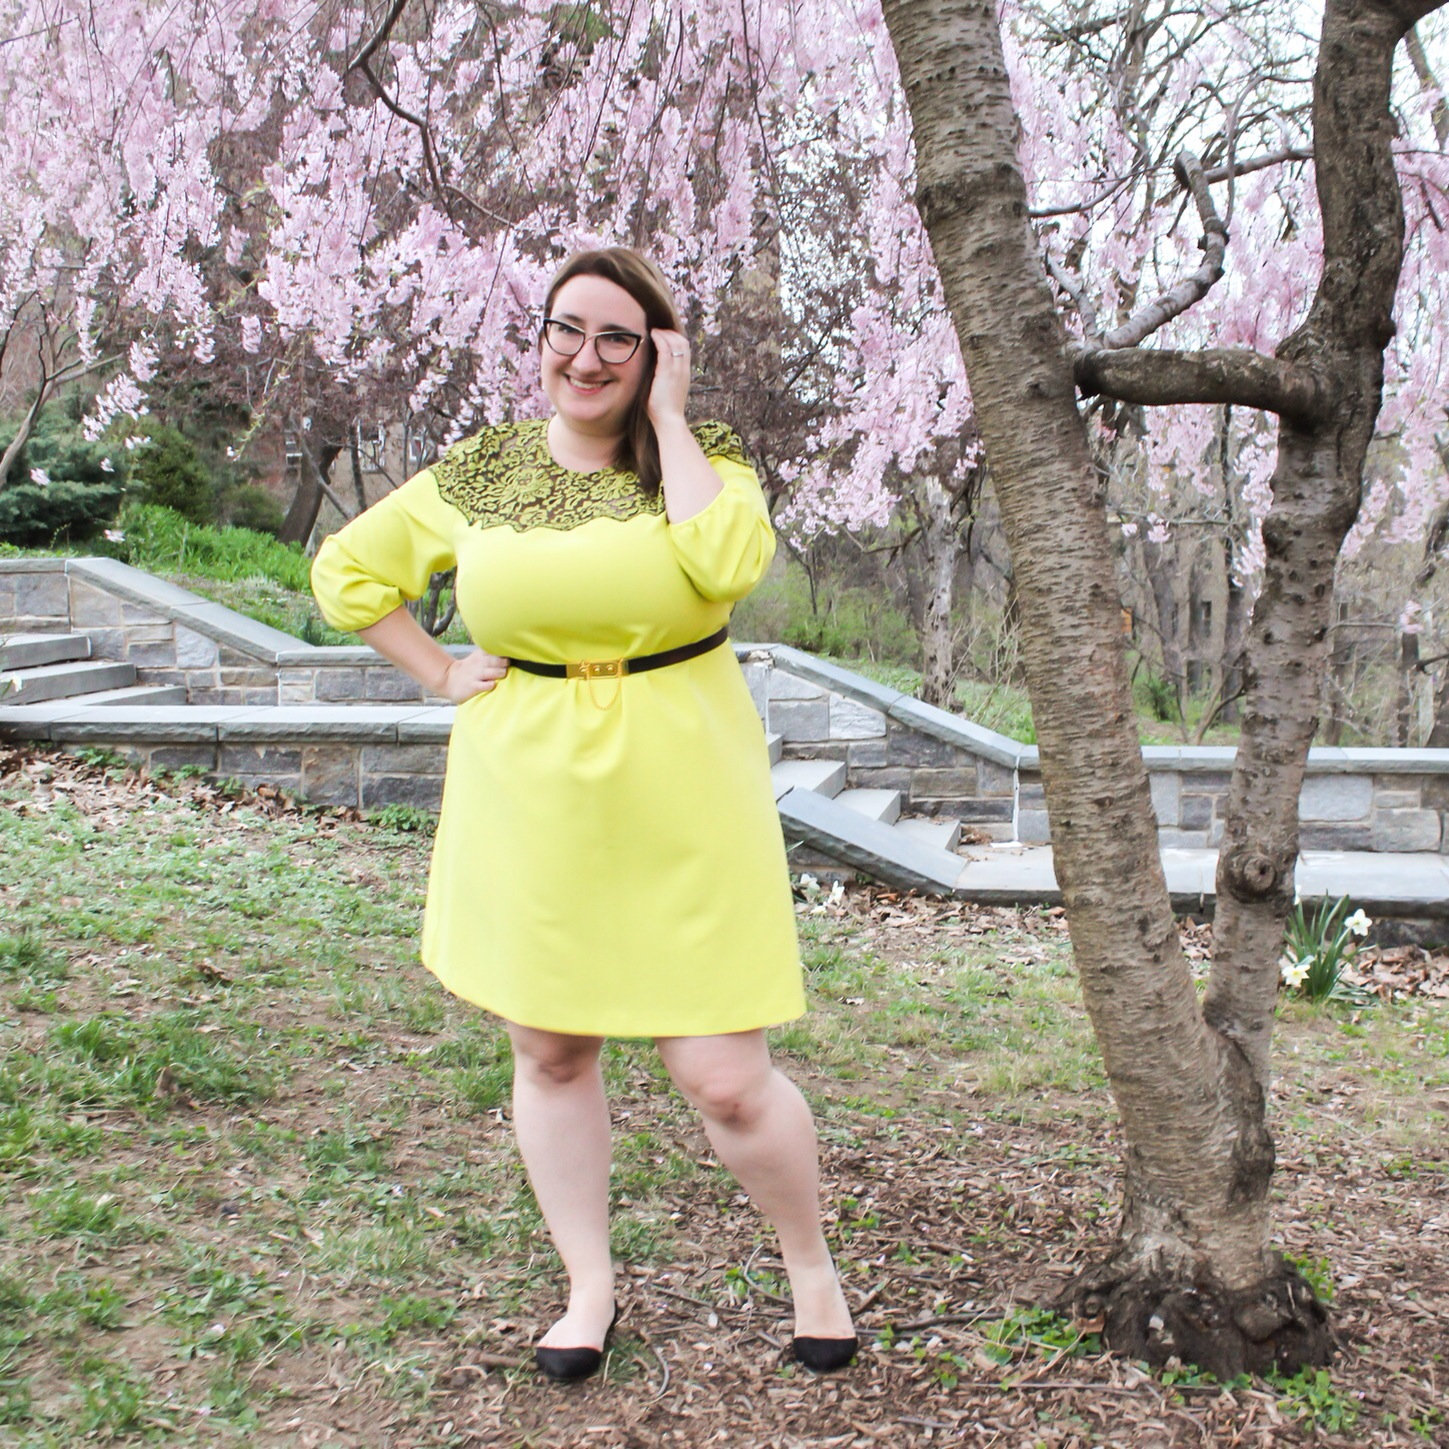 OOTD: Cherry Blossoms and Lela Rose